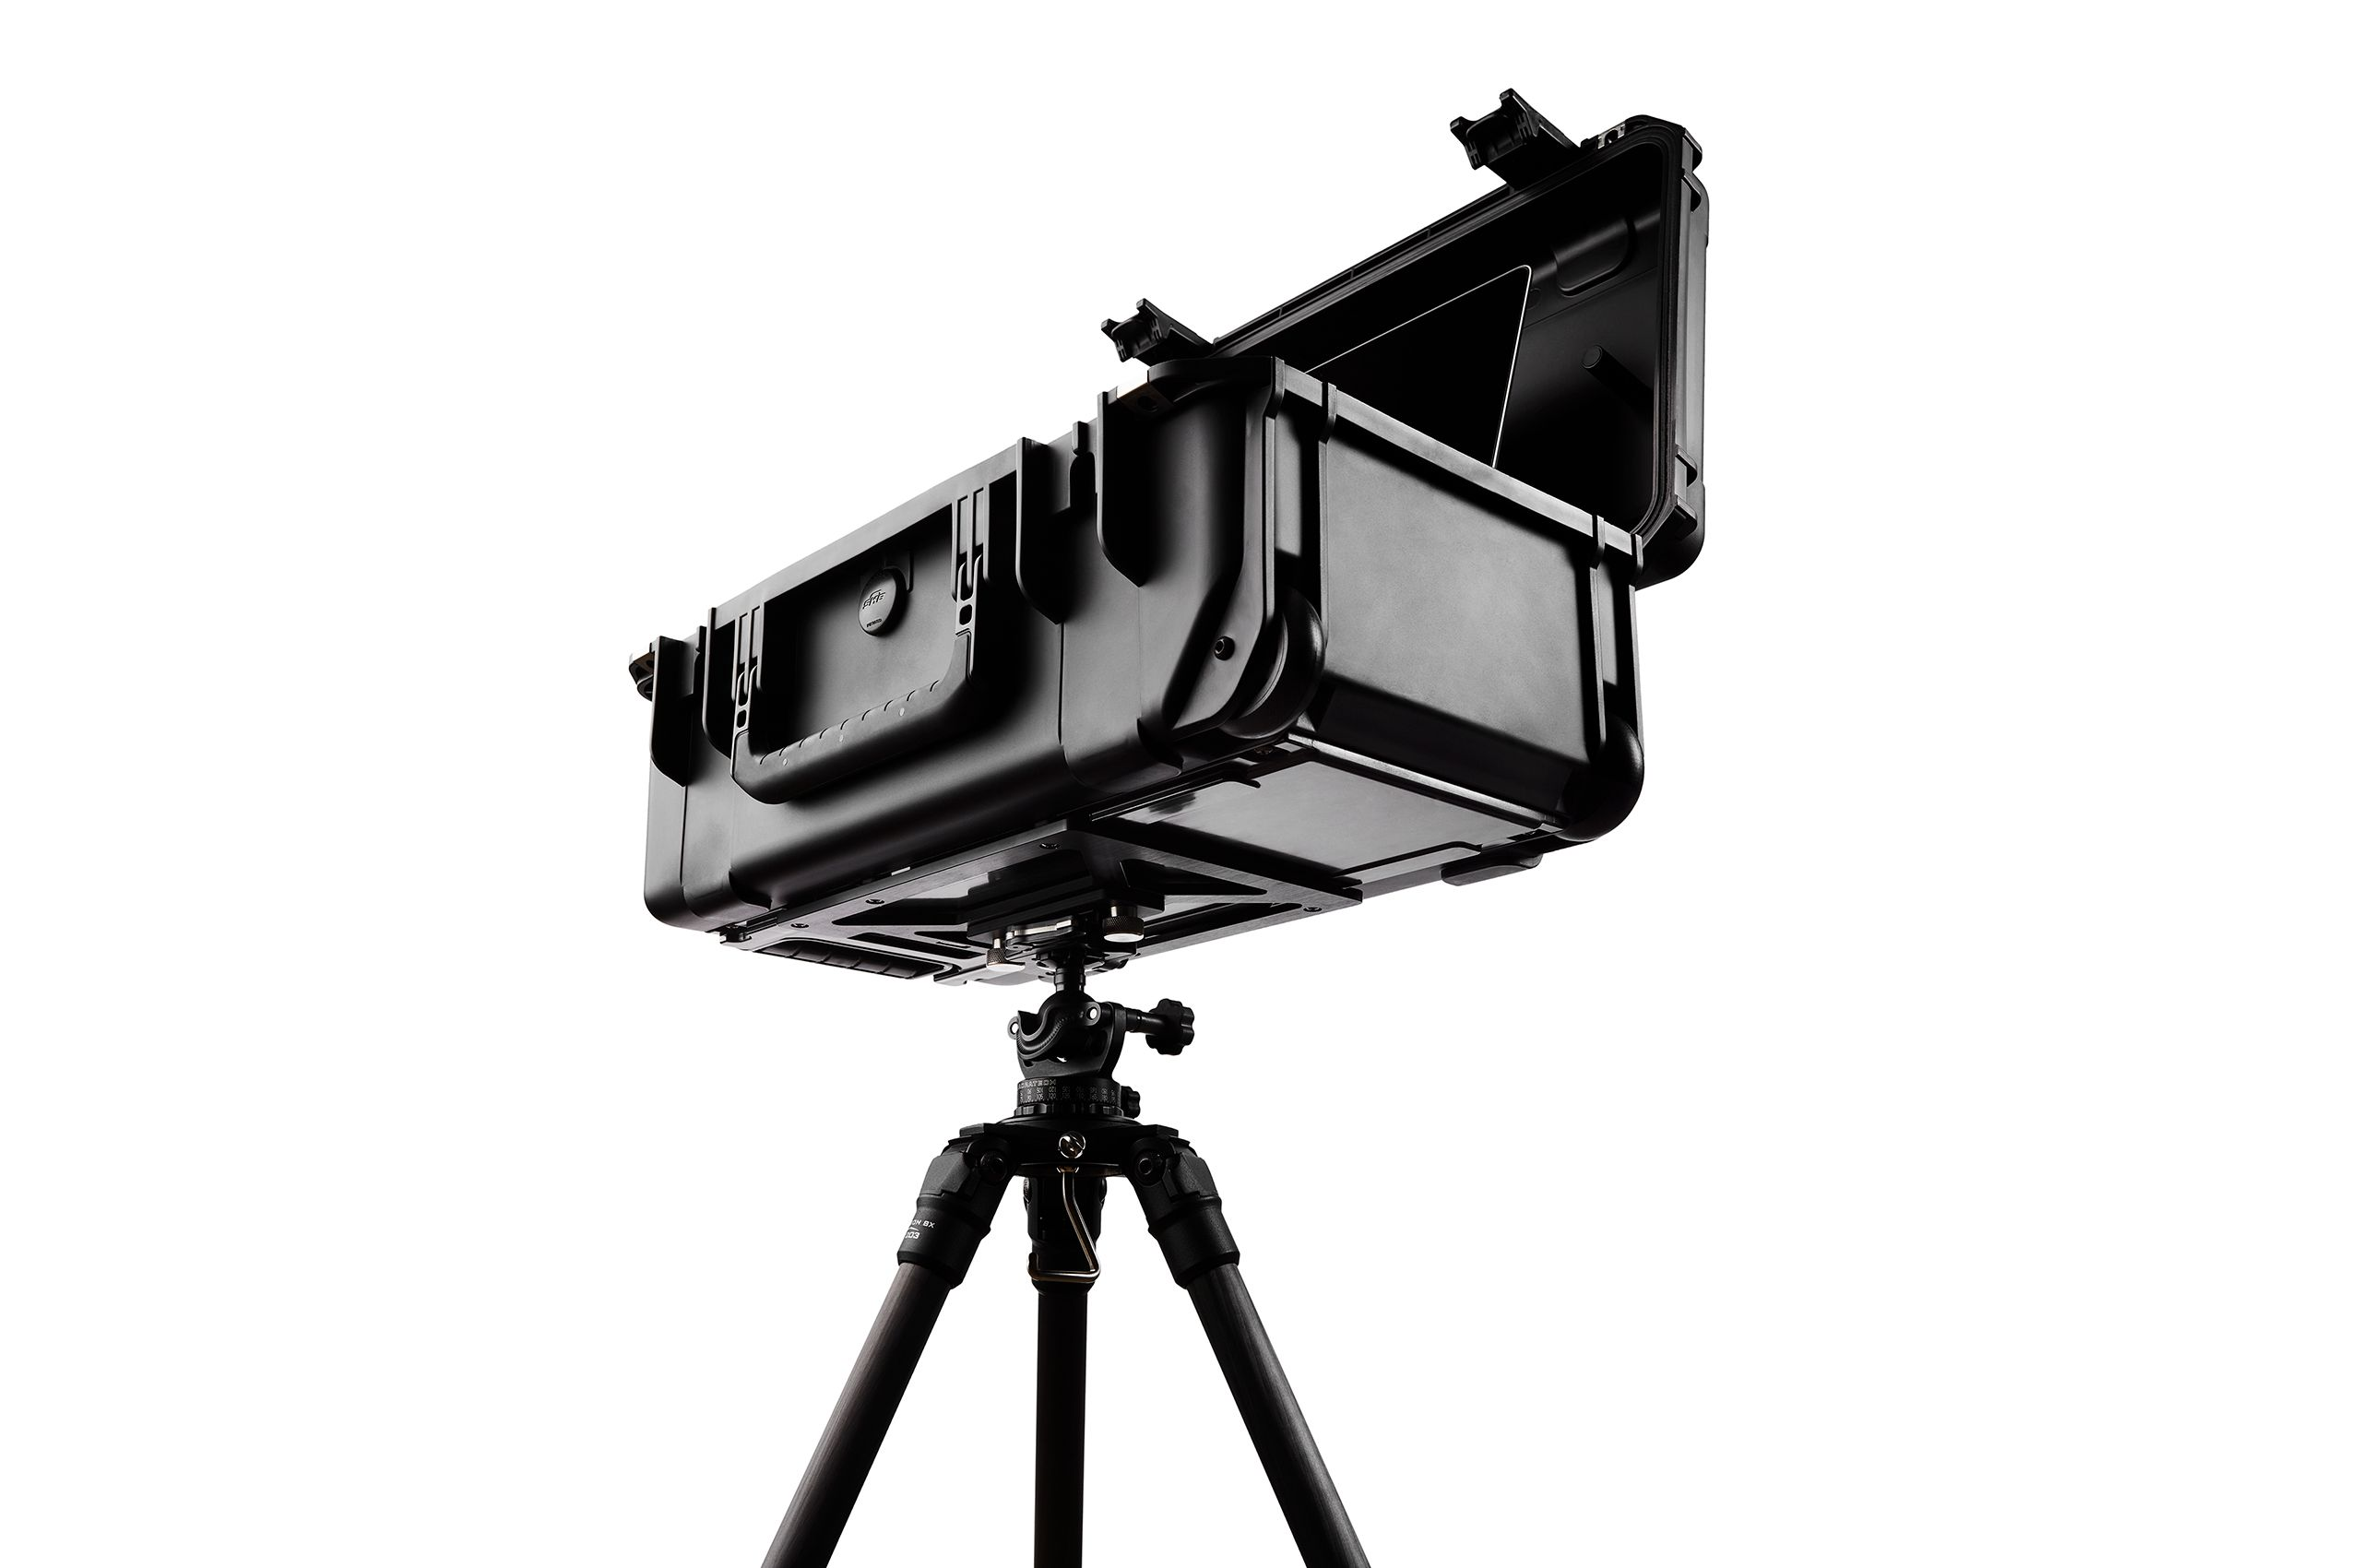 INOVATIV_DIGICASE_TRIPOD_MOUNT_004.jpg